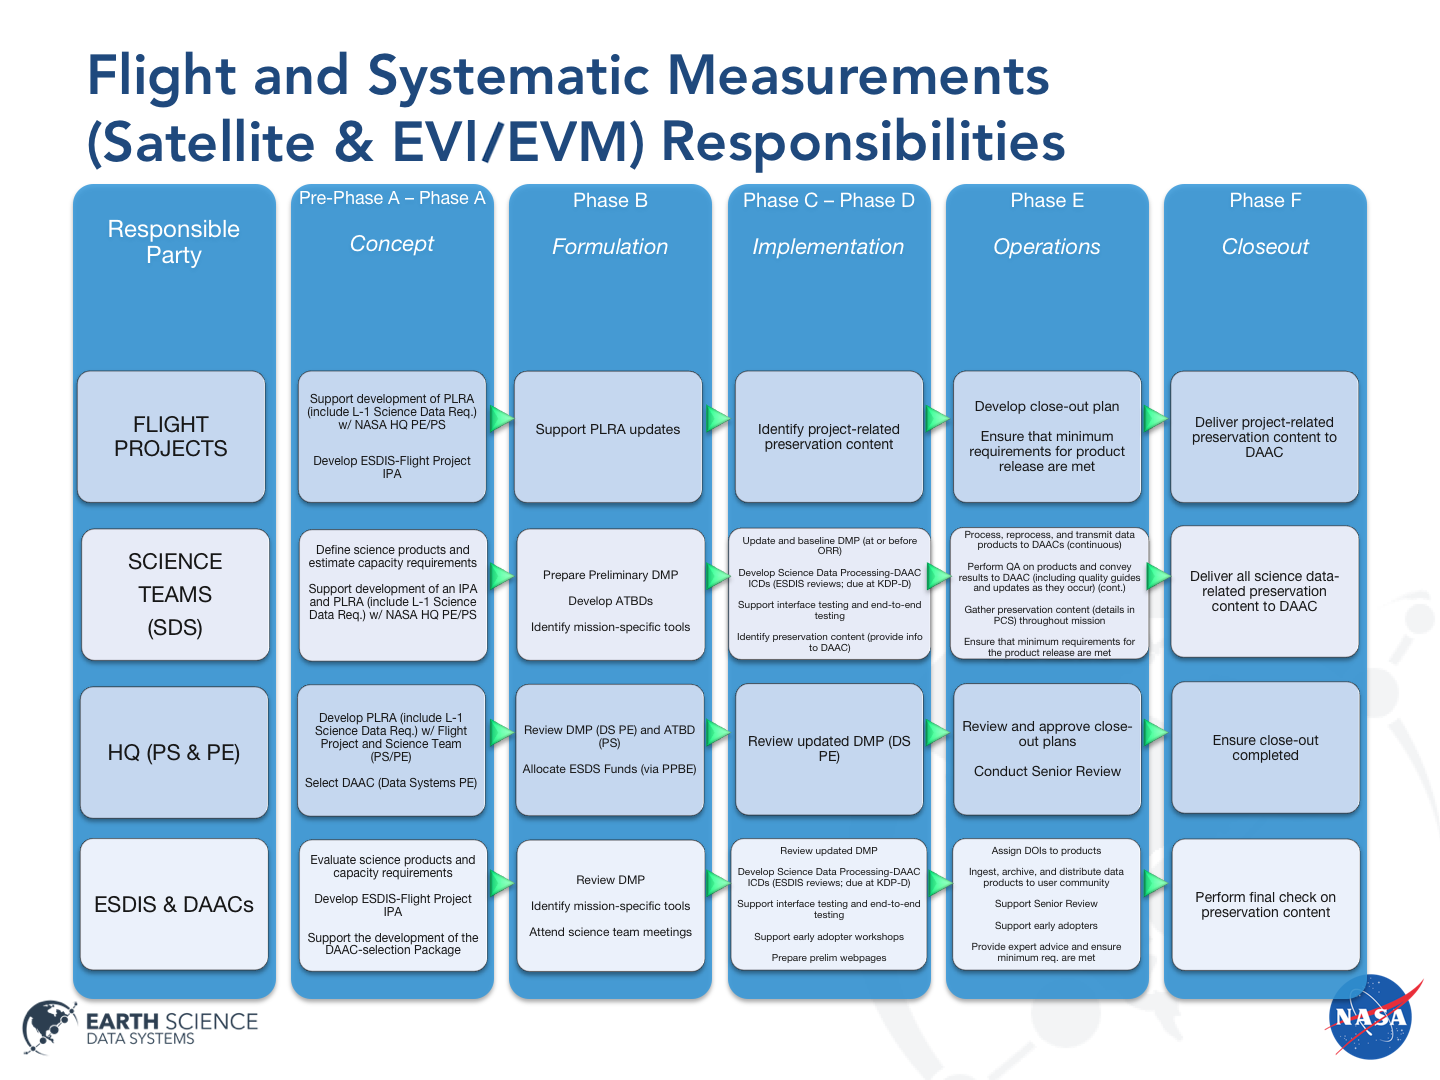 Flight and Systematic Measurements (satellite, EVI/EVM) Responsibilities